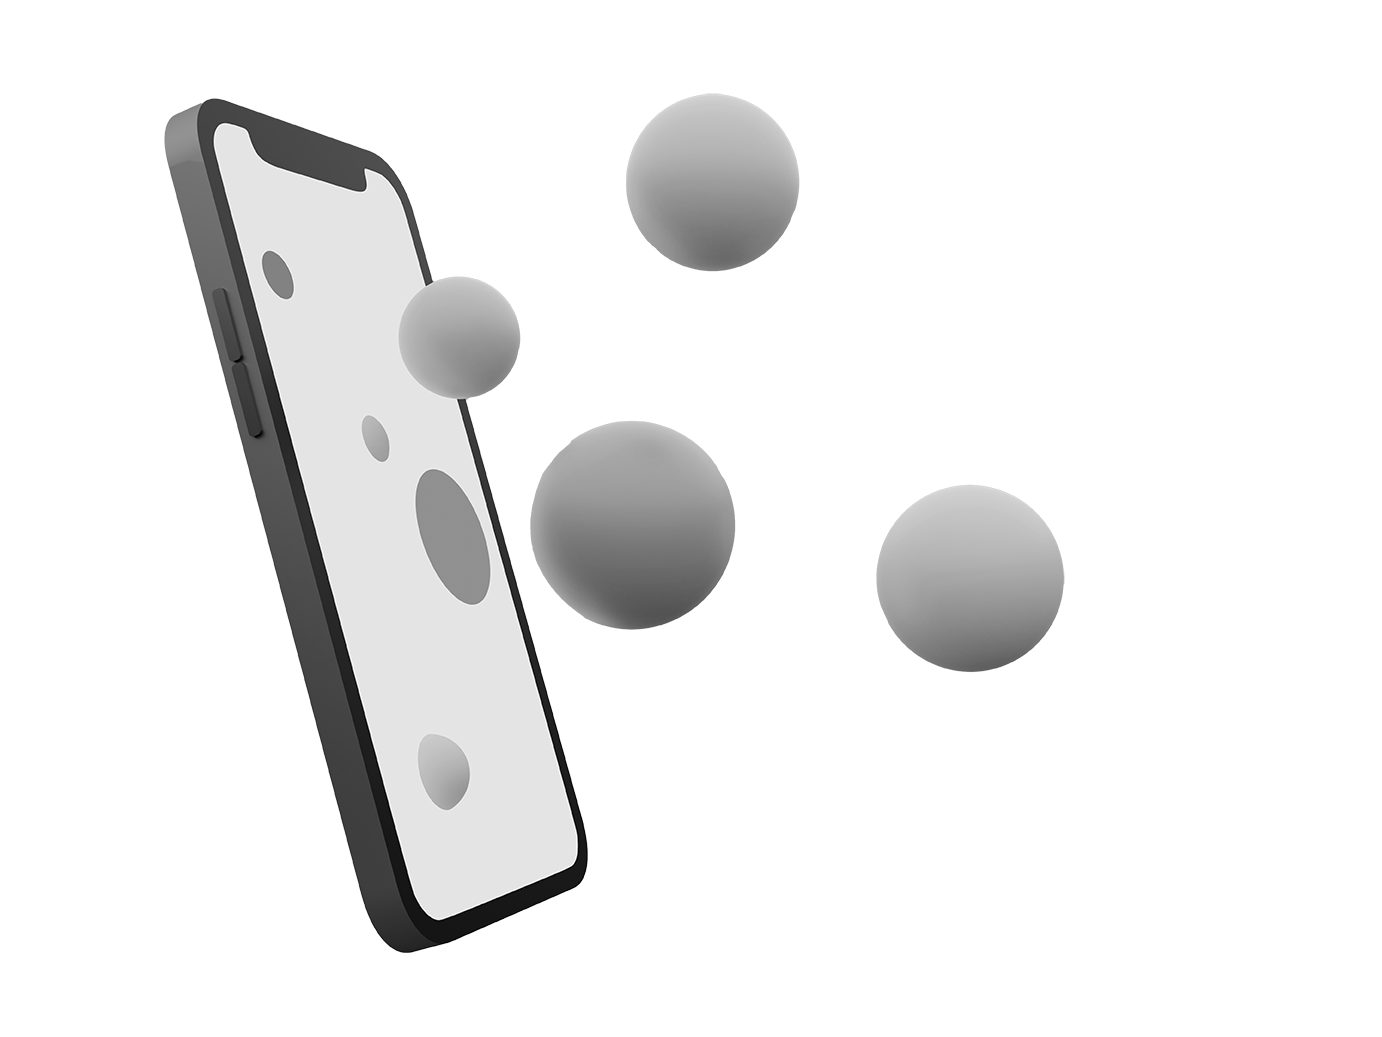 Smartphone floating with bubbles poppin out of it